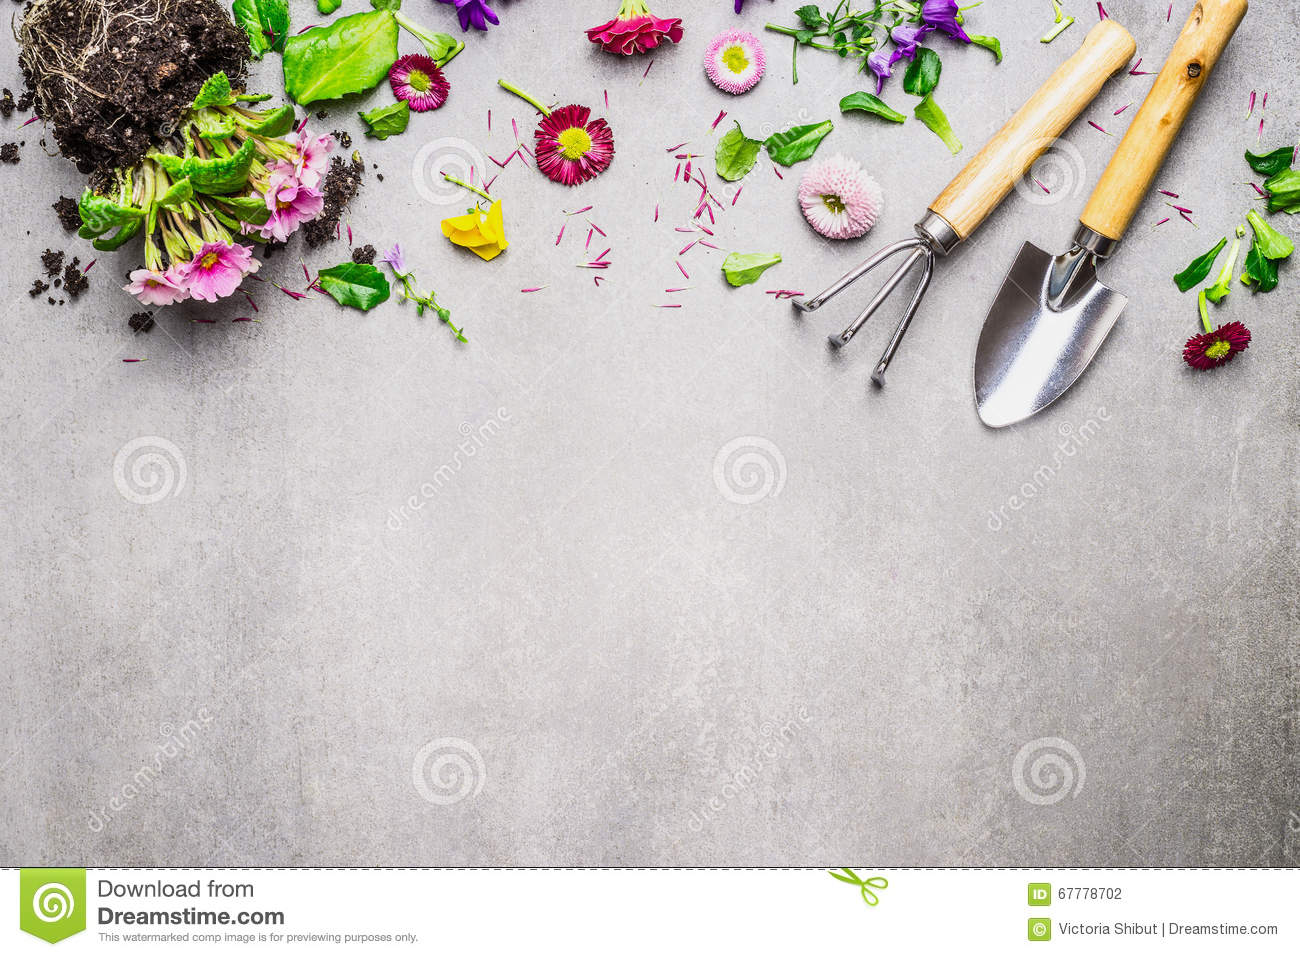 Gardening Border With Various Flowers Plant And Garden Tools On Gray Stone Background Top View